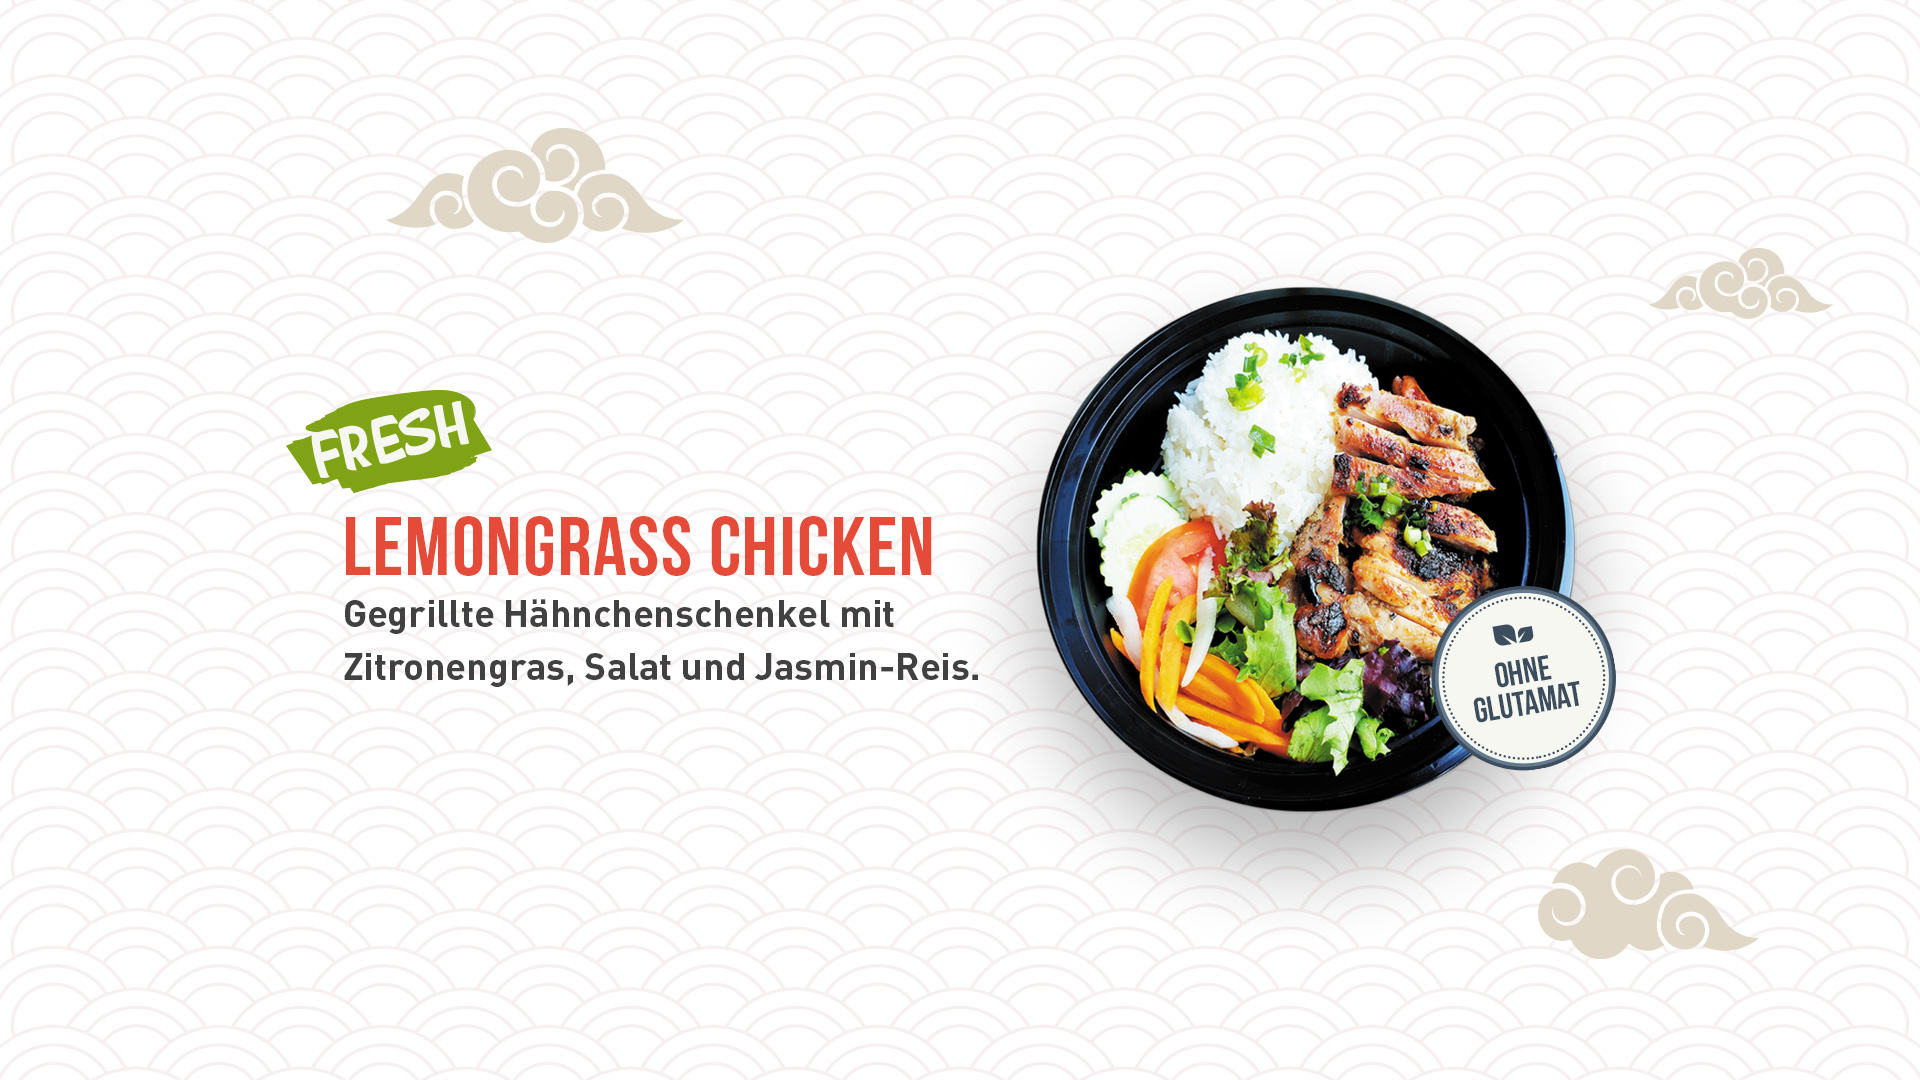 Lemongrass Chicken